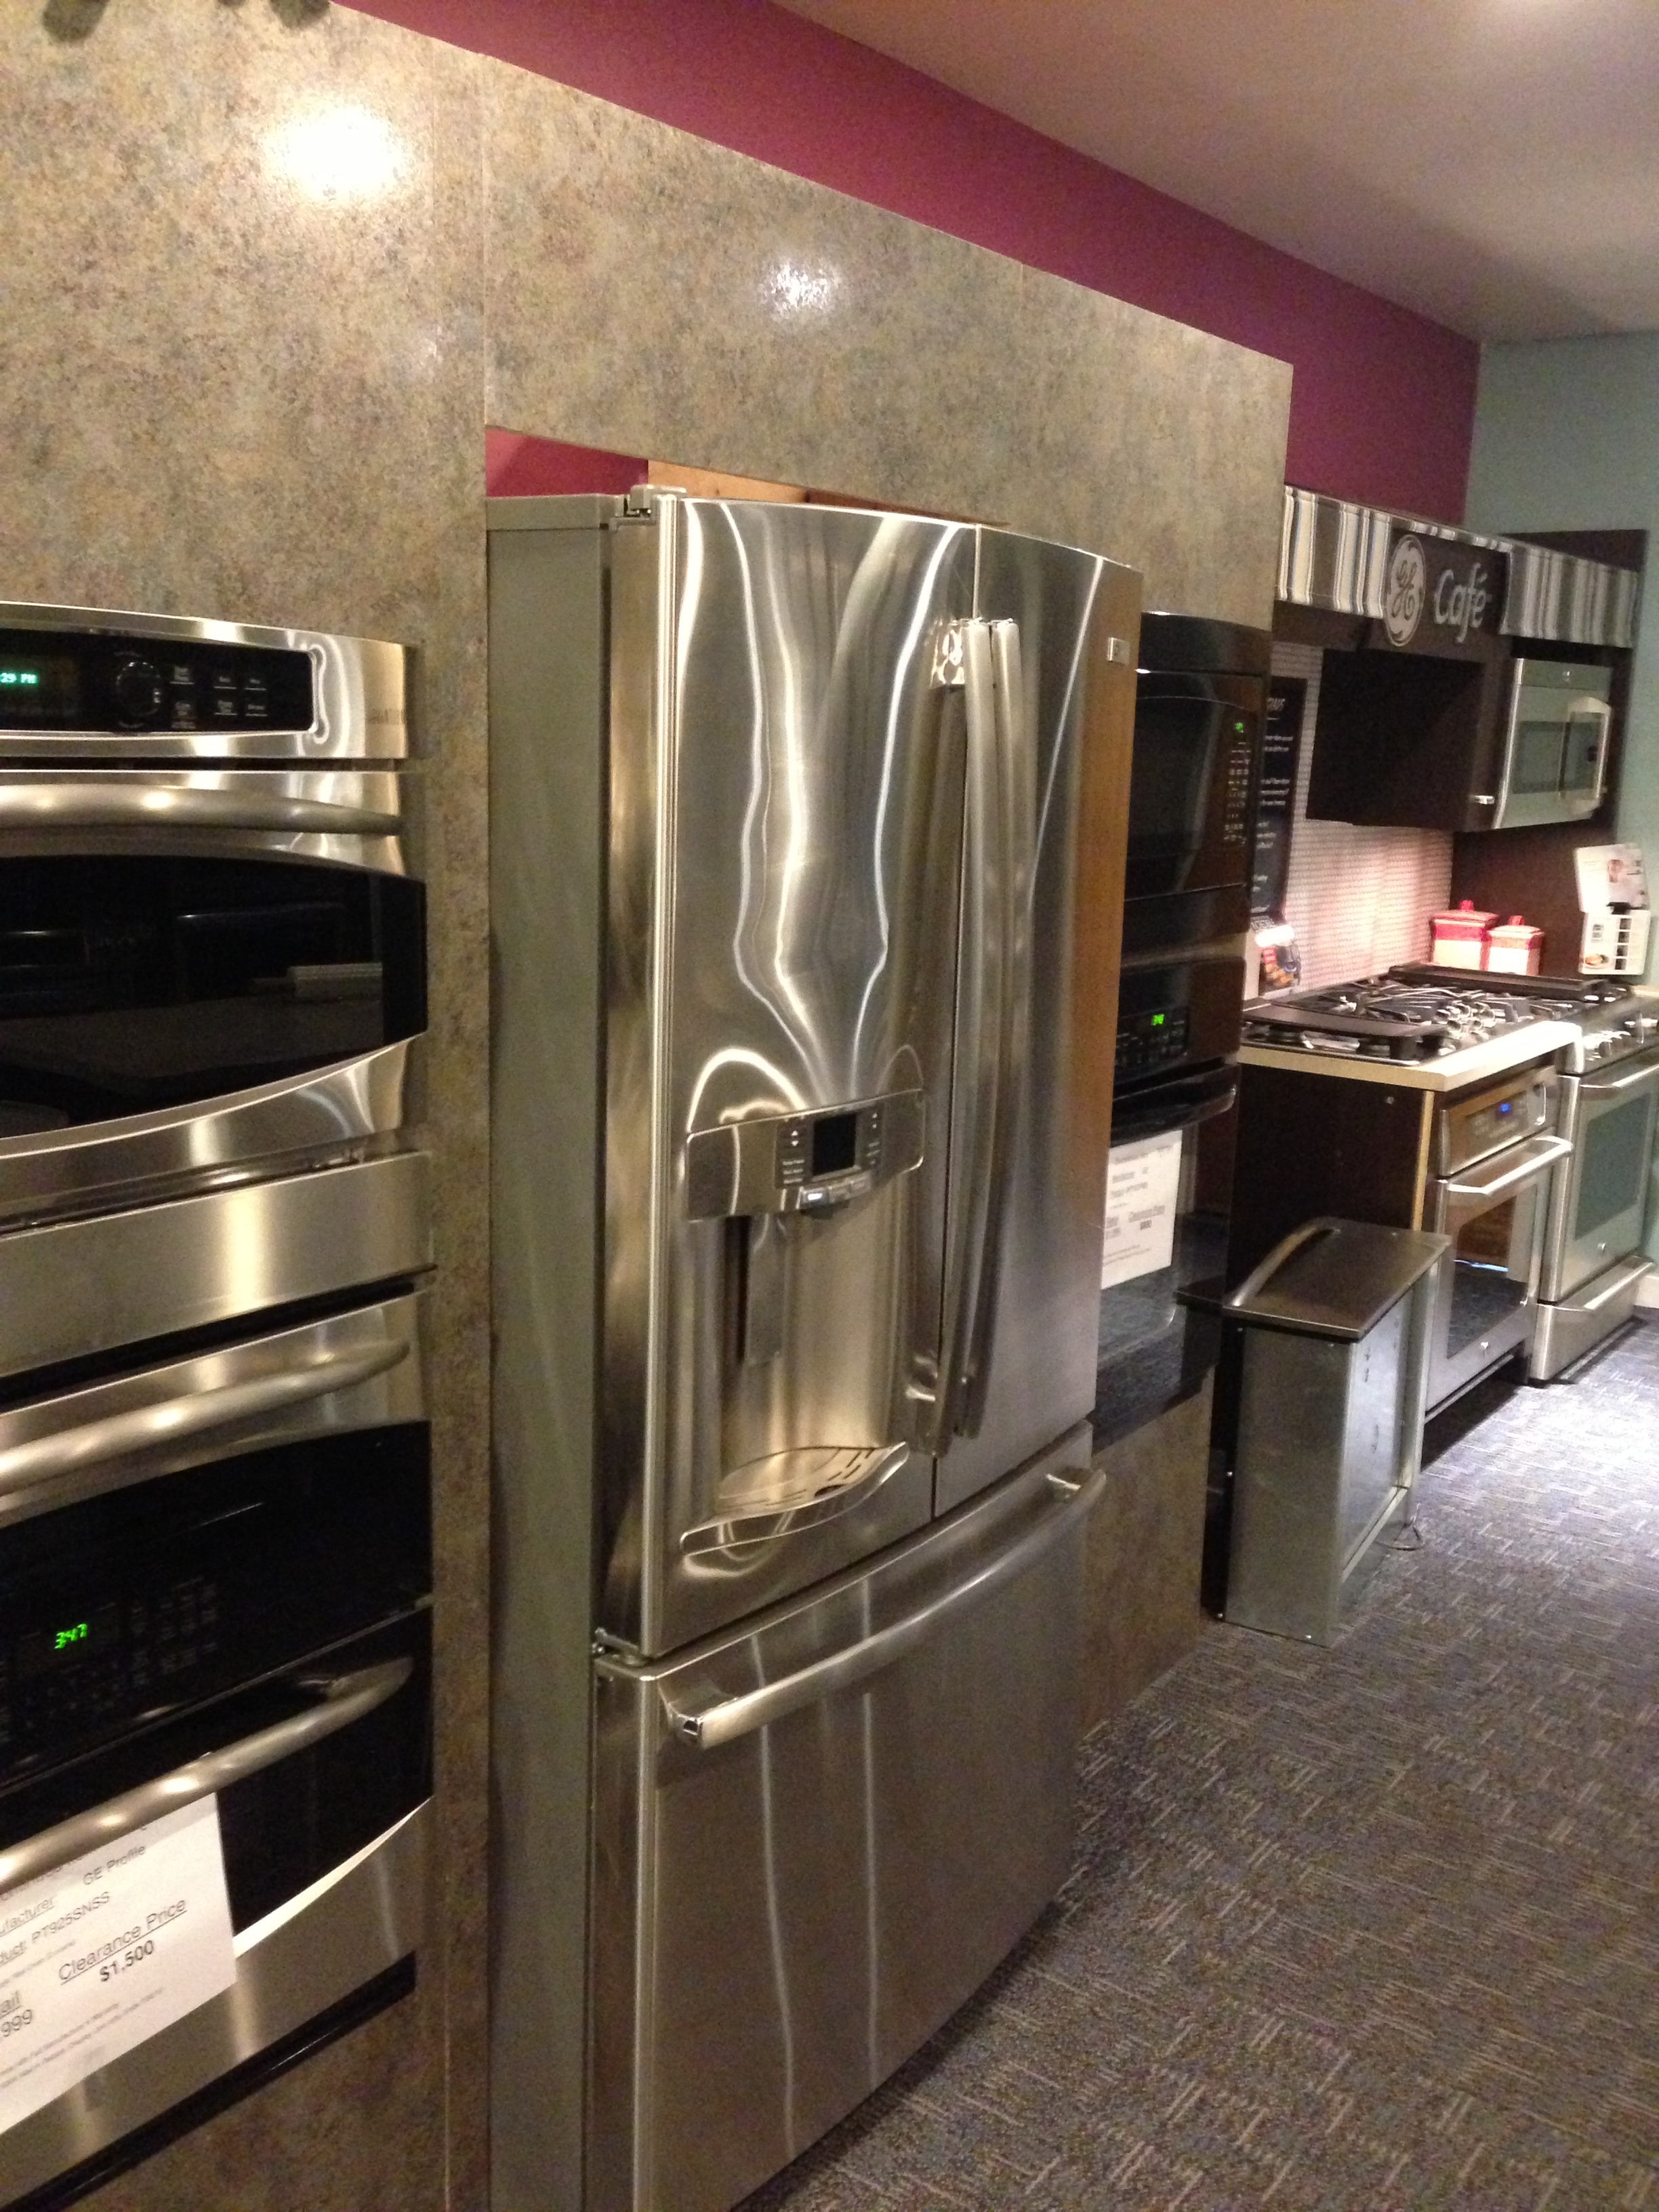 Large Capacity Refrigerators Blog Lansdale Kitchen